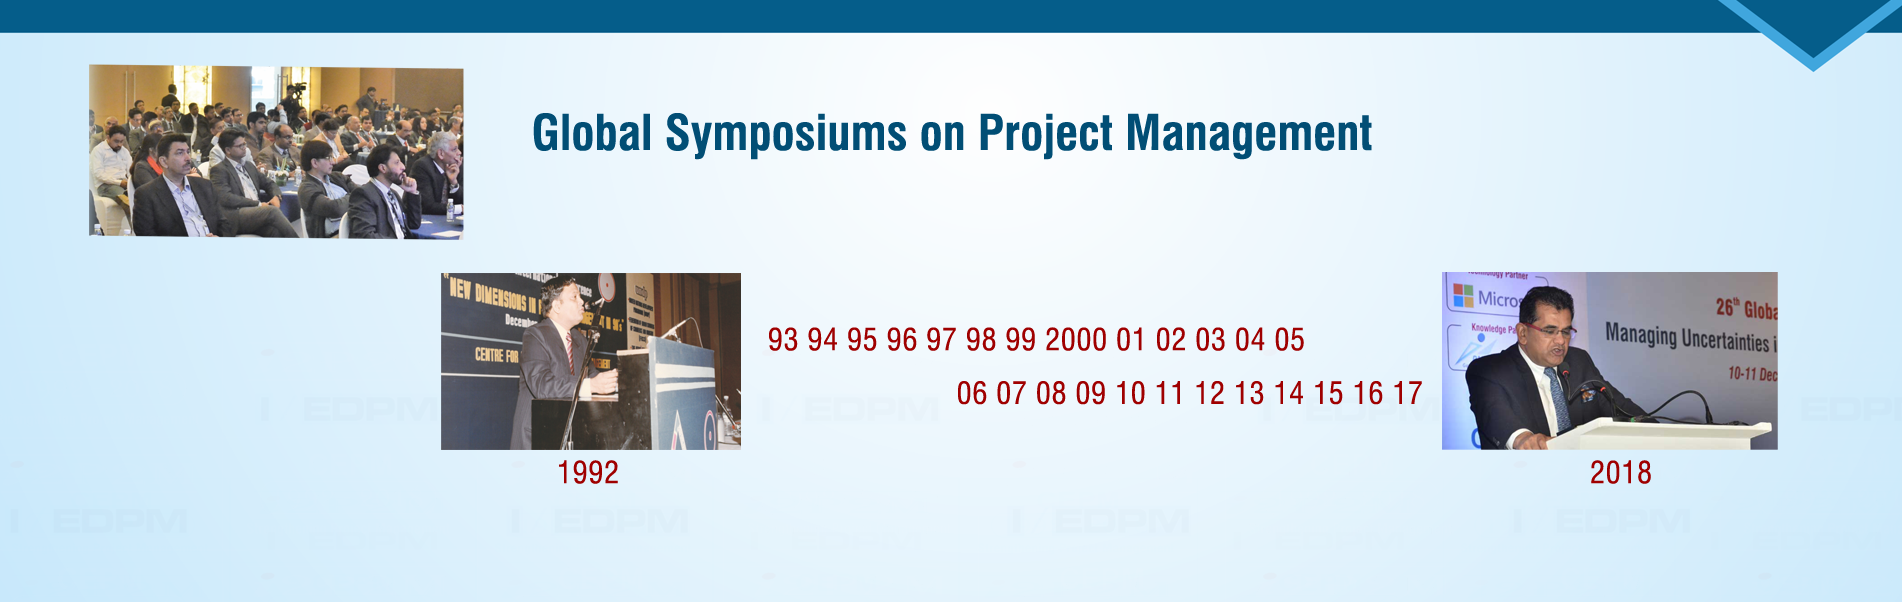 Global Symposiums on Project Management